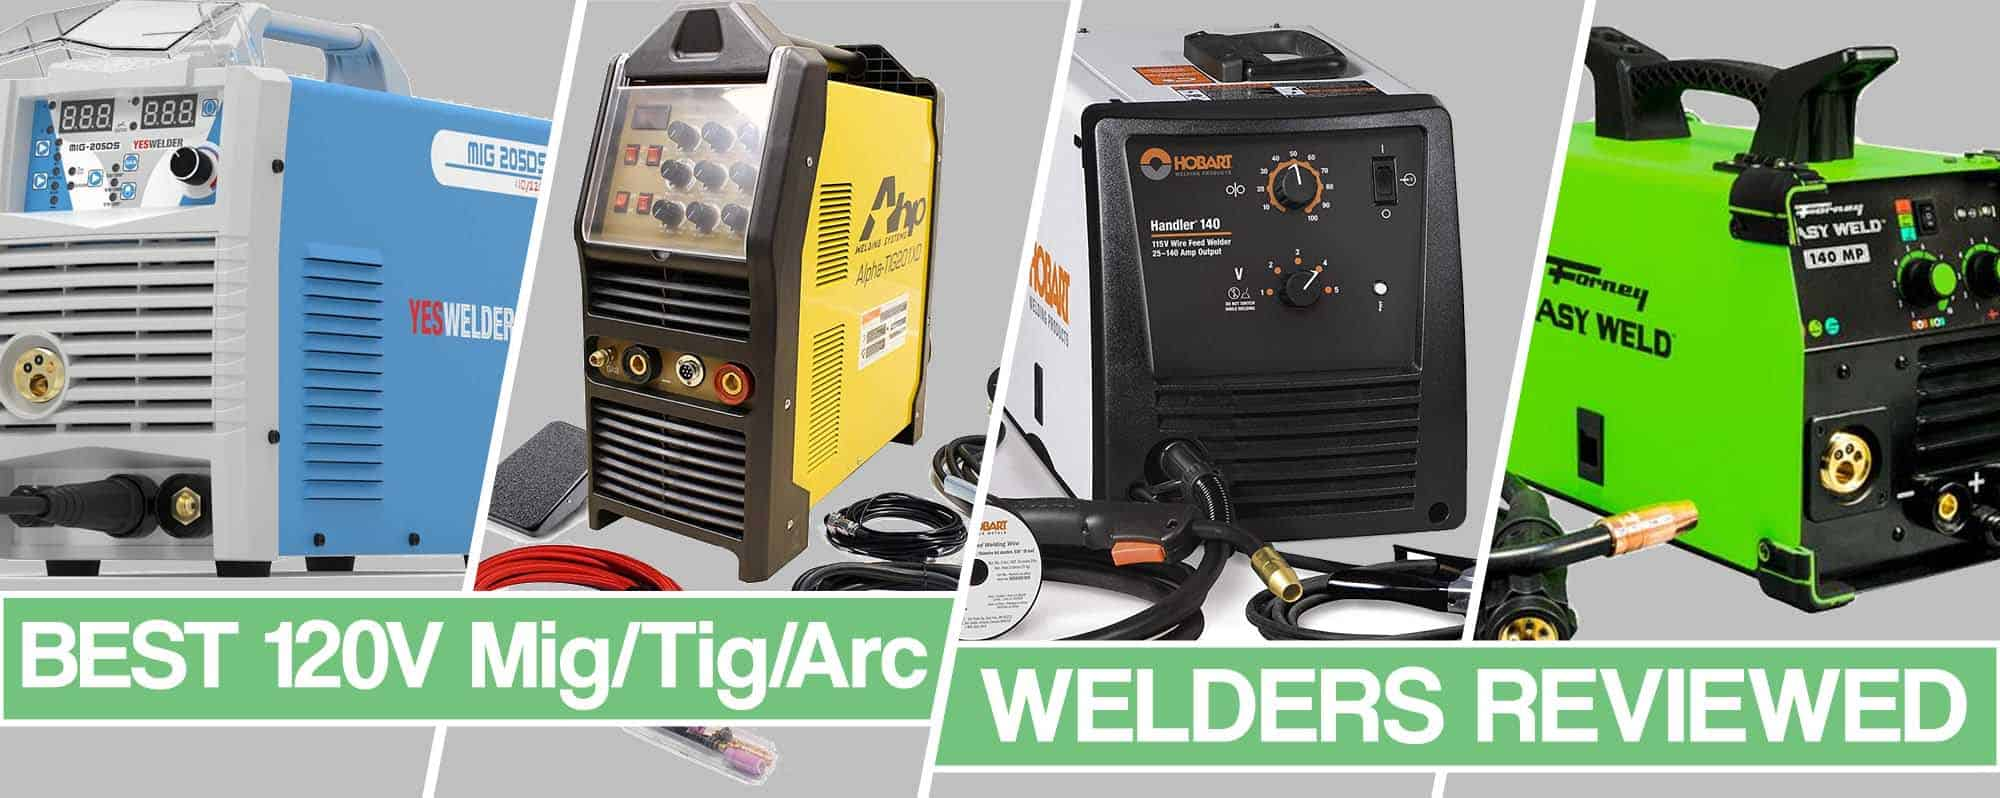 Feature image for best 120v welder article